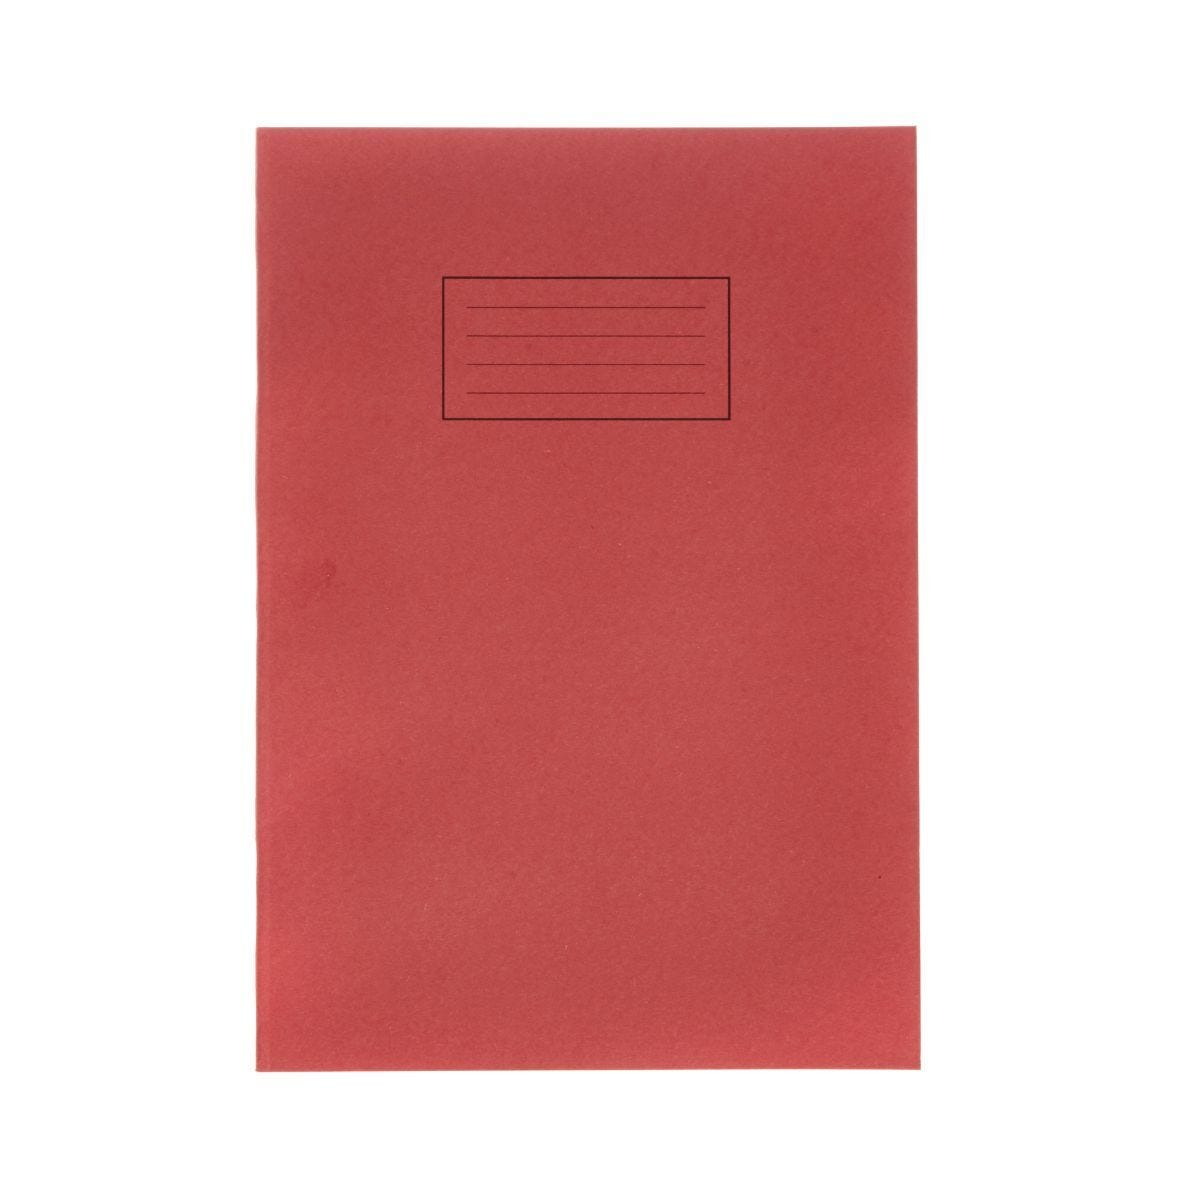 Silvine Exercise Book A4 Ruled 75gsm Pack of 40 Red